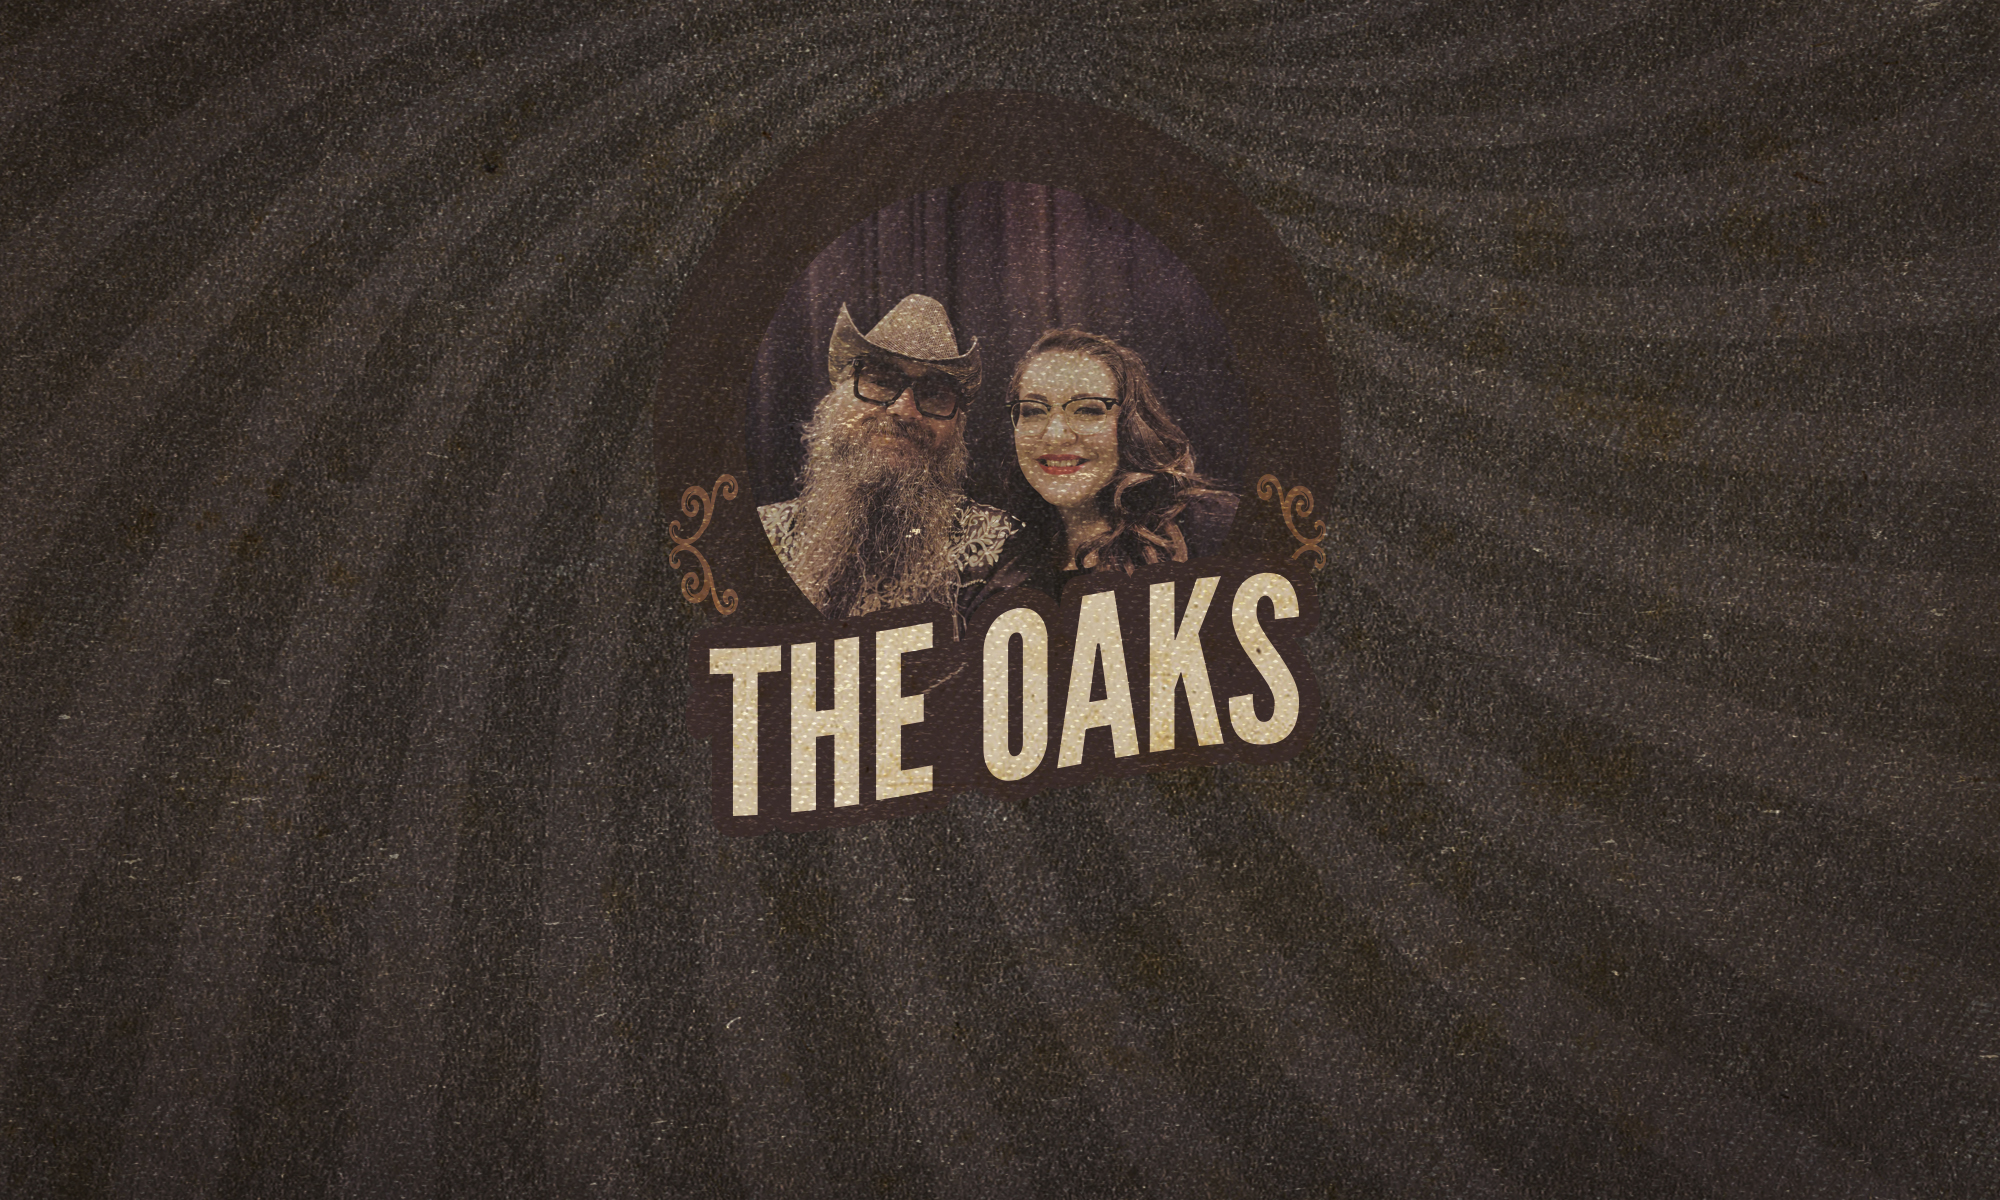 The Oaks (Sweden)